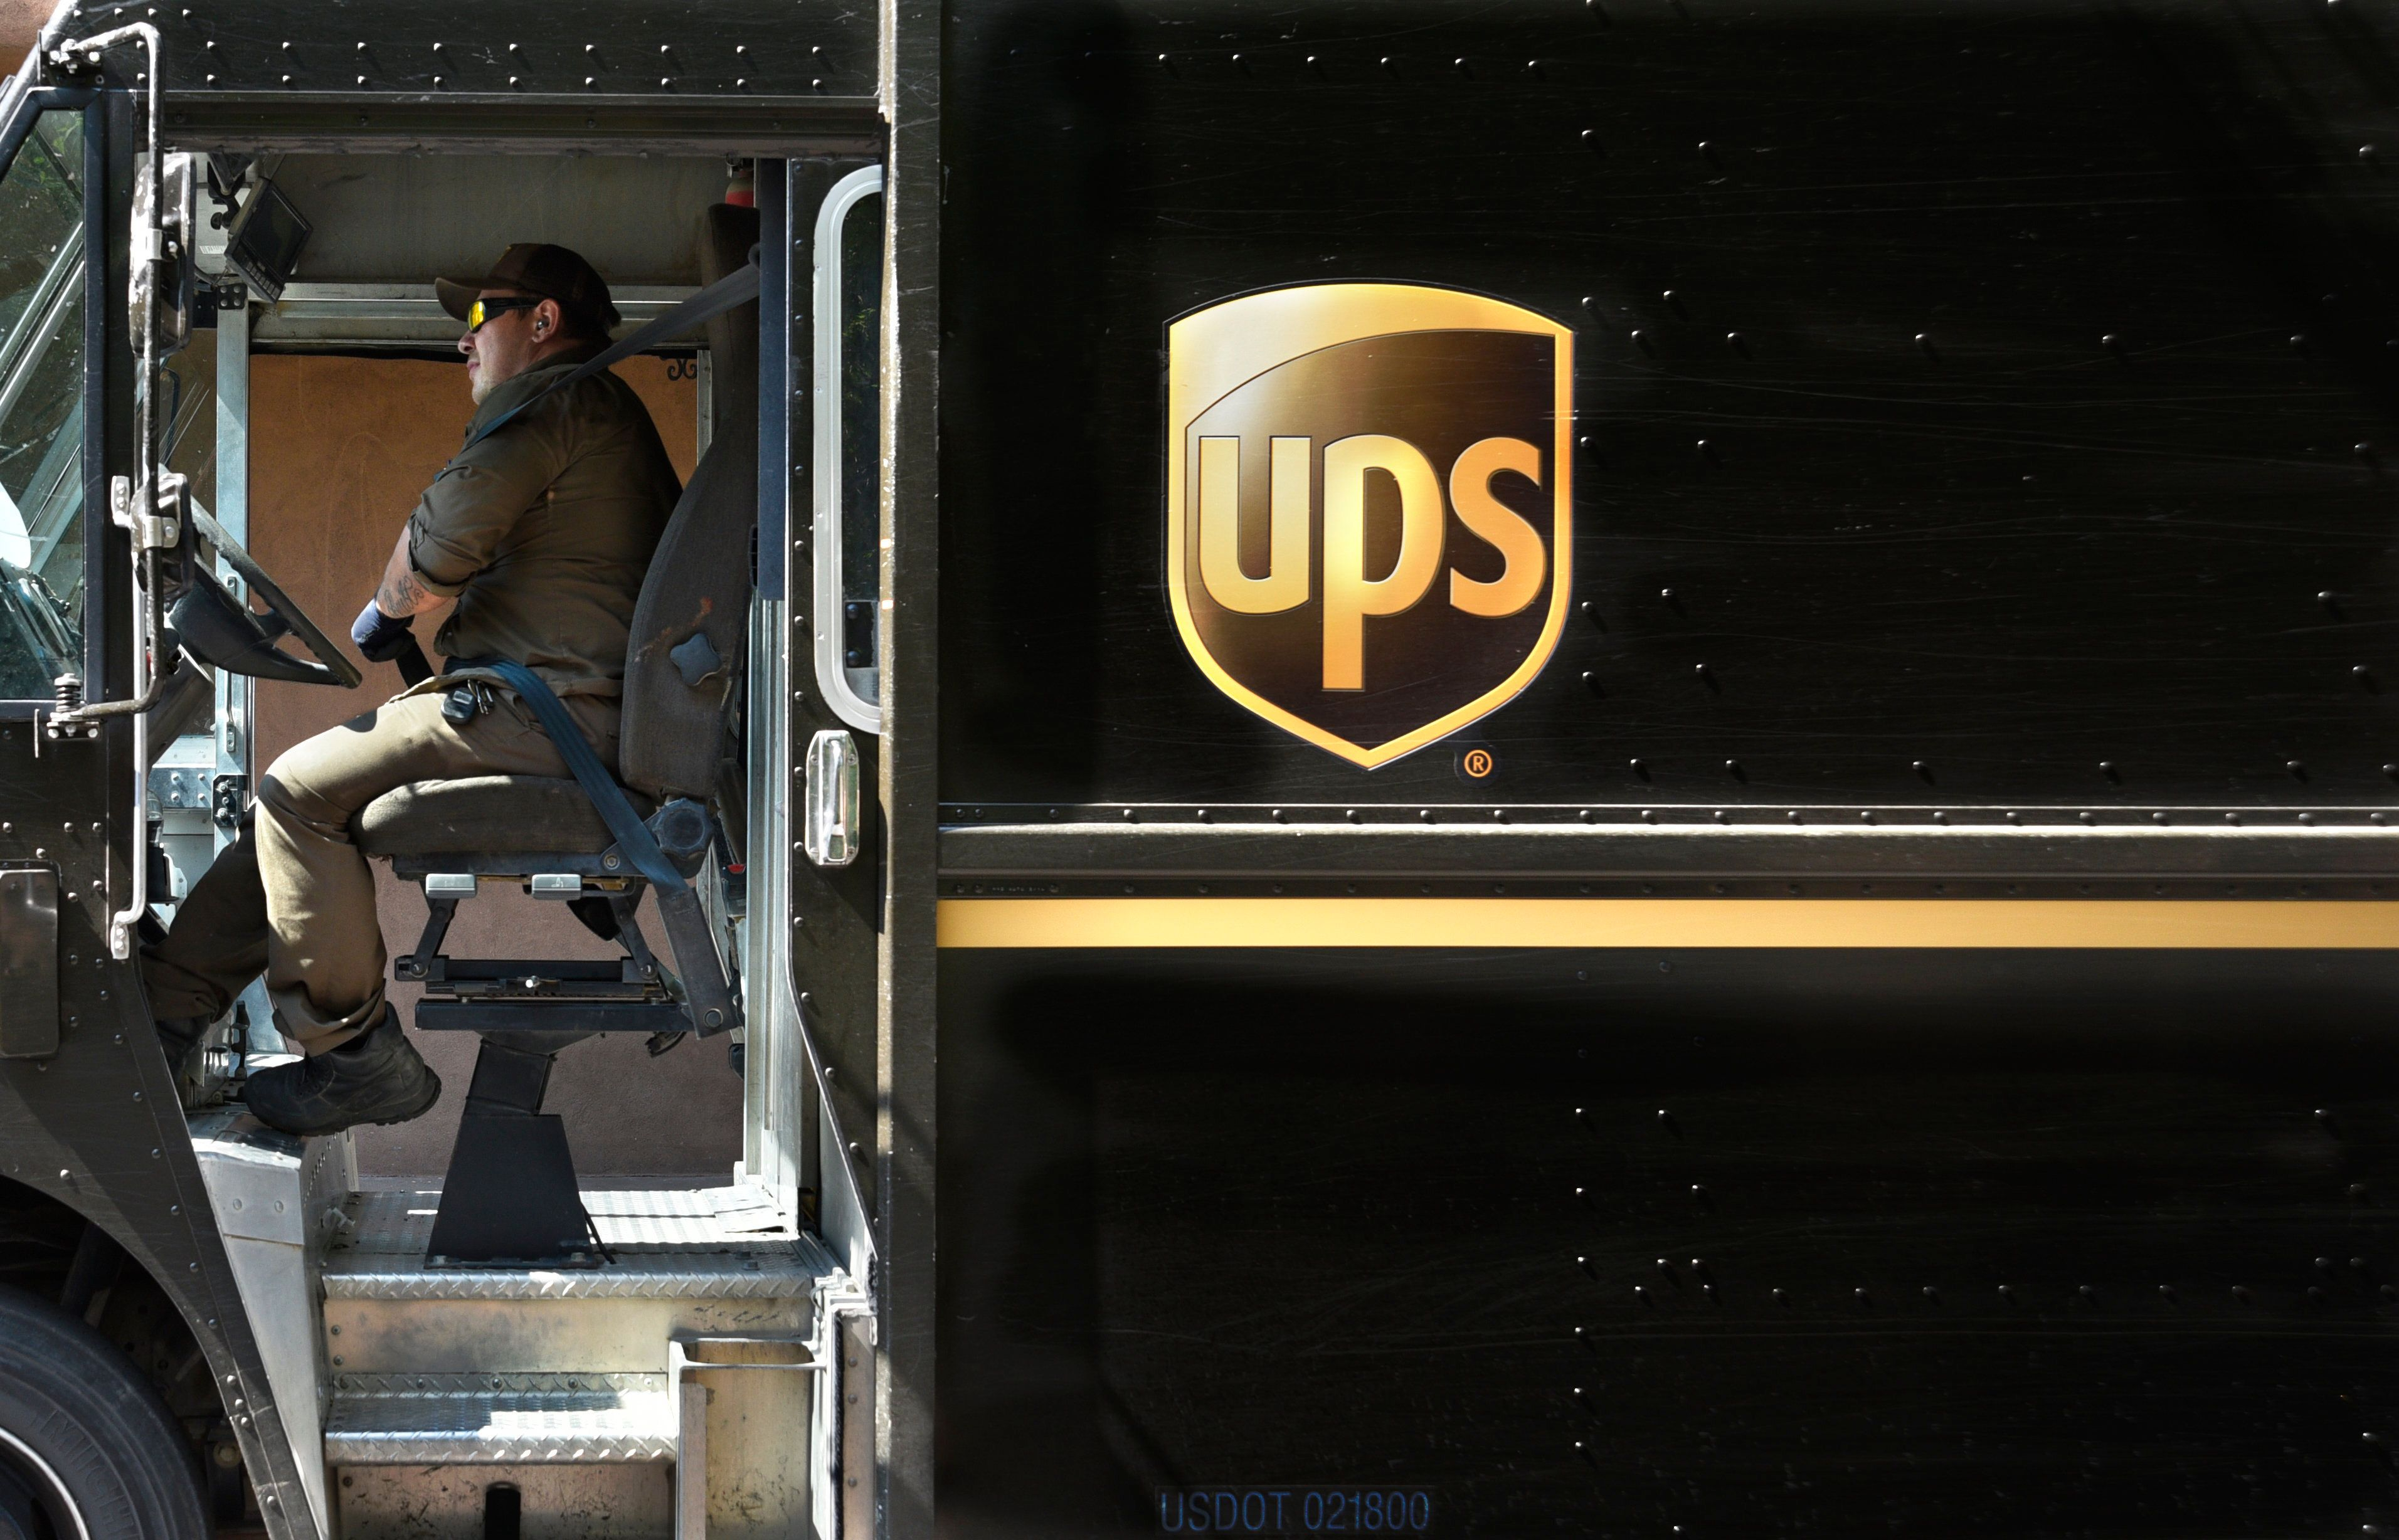 Teamsters Union Faces Revolt From Members Over UPS Contracts